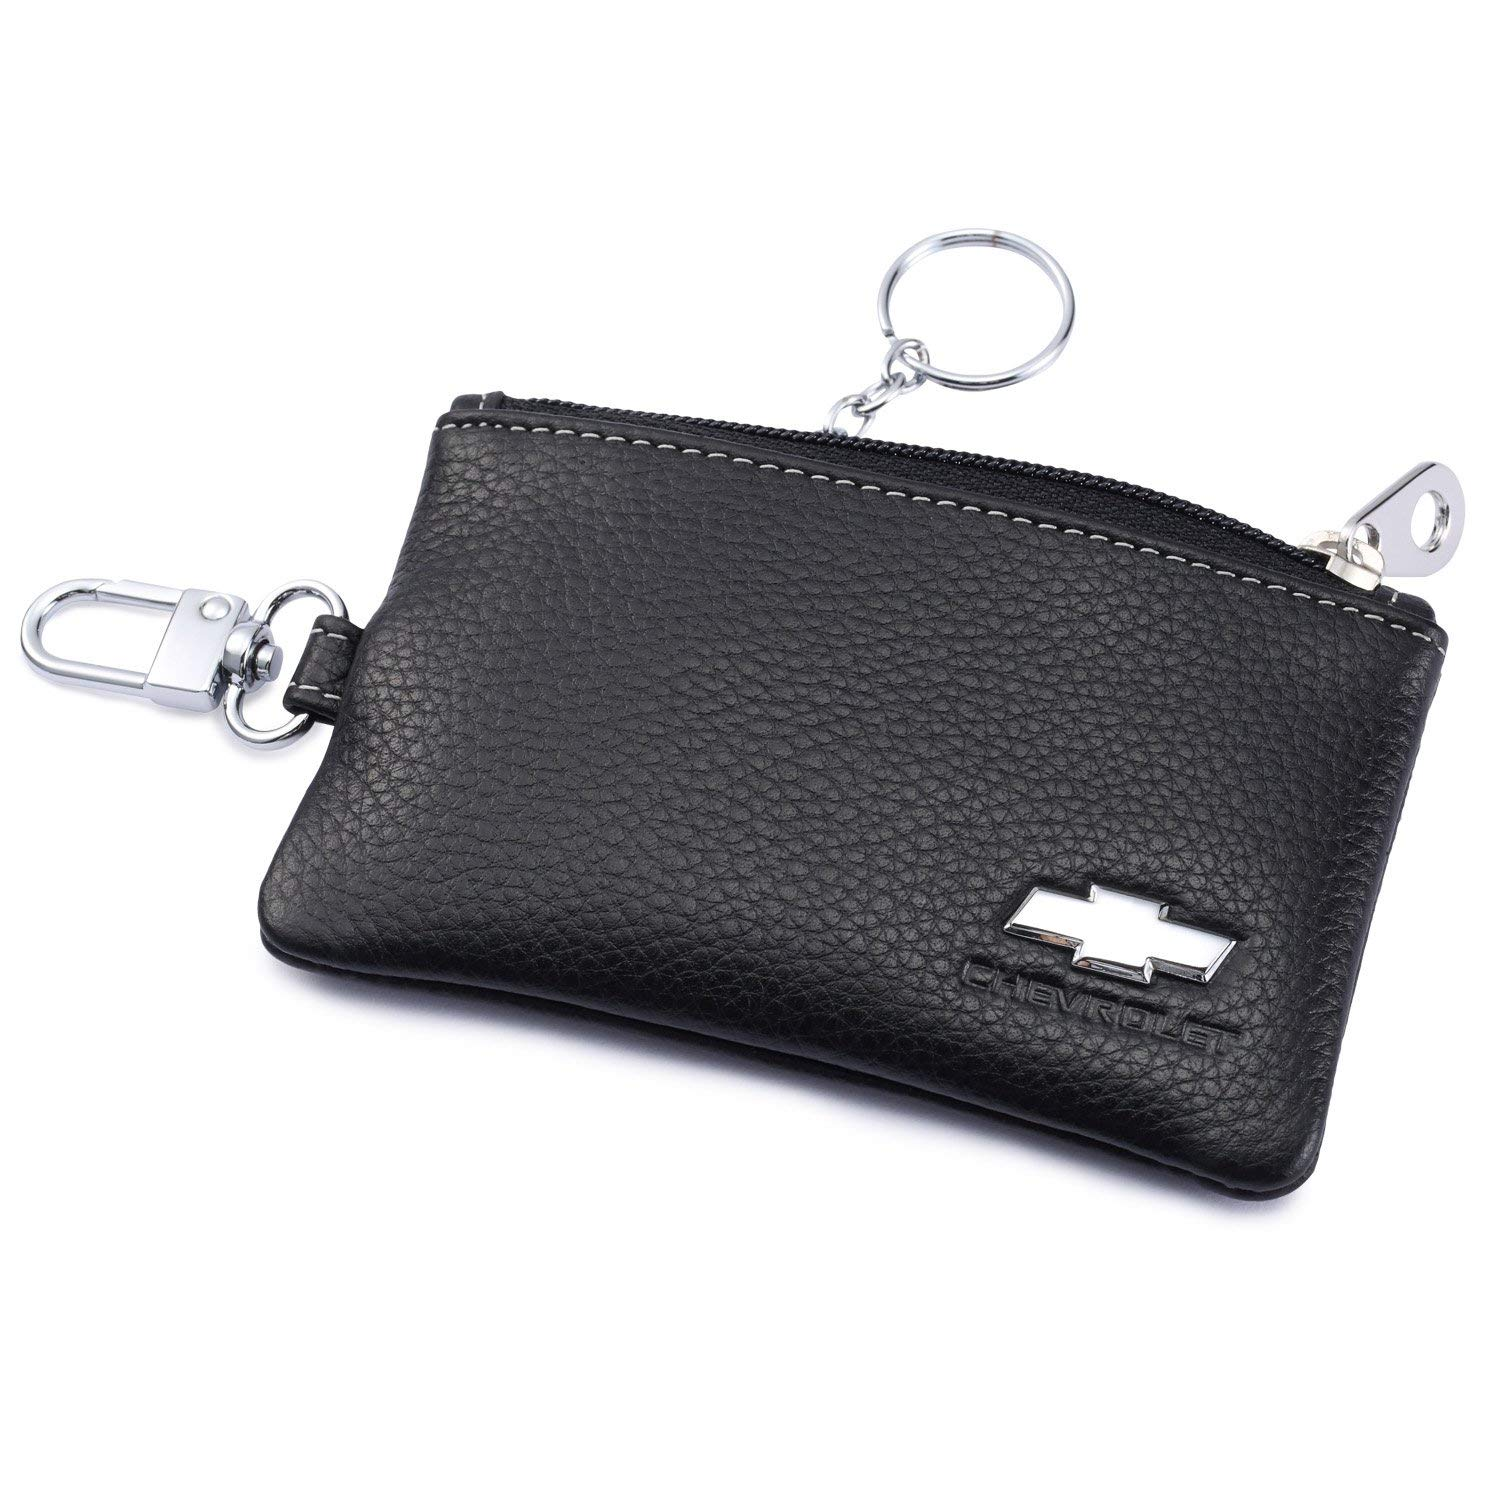 Chevrolet Car Key Holder Remote Cover Fob with 1 Metal Keychain - Genuine Leather